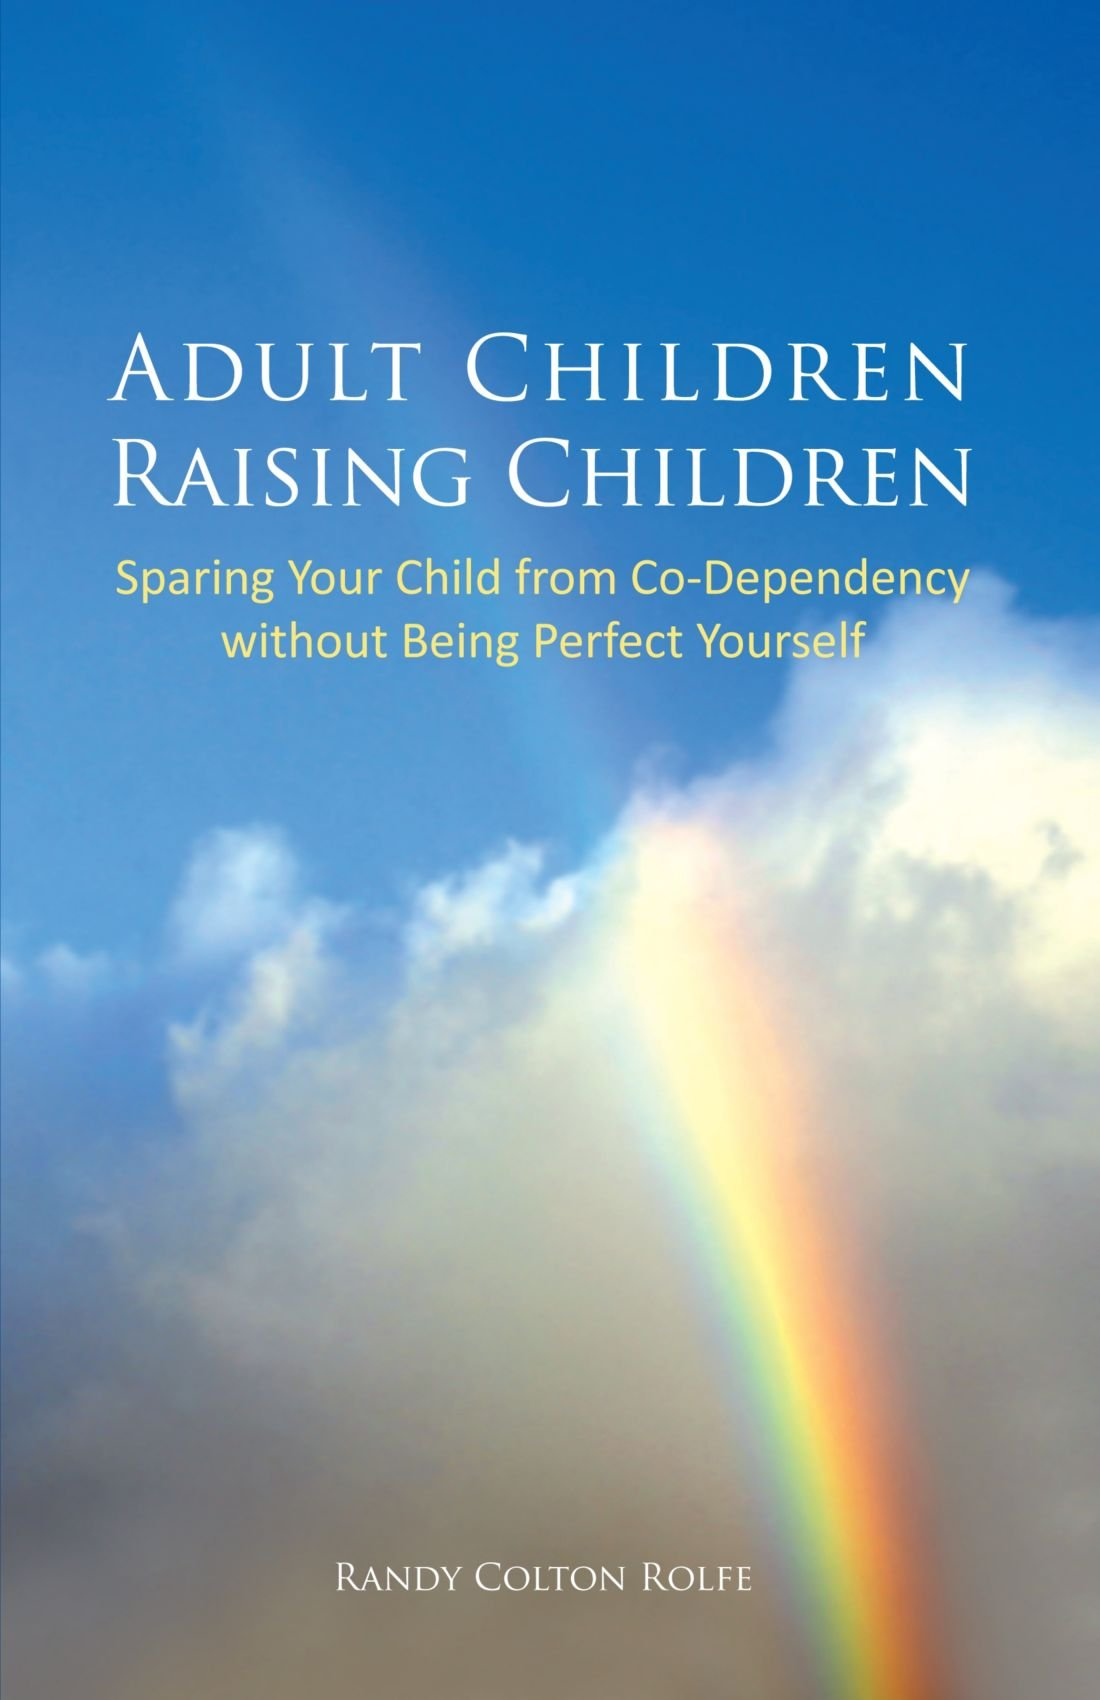 Download Adult Children Raising Children: Sparing Your Child from Co-Dependency without Being Perfect Yourself pdf epub